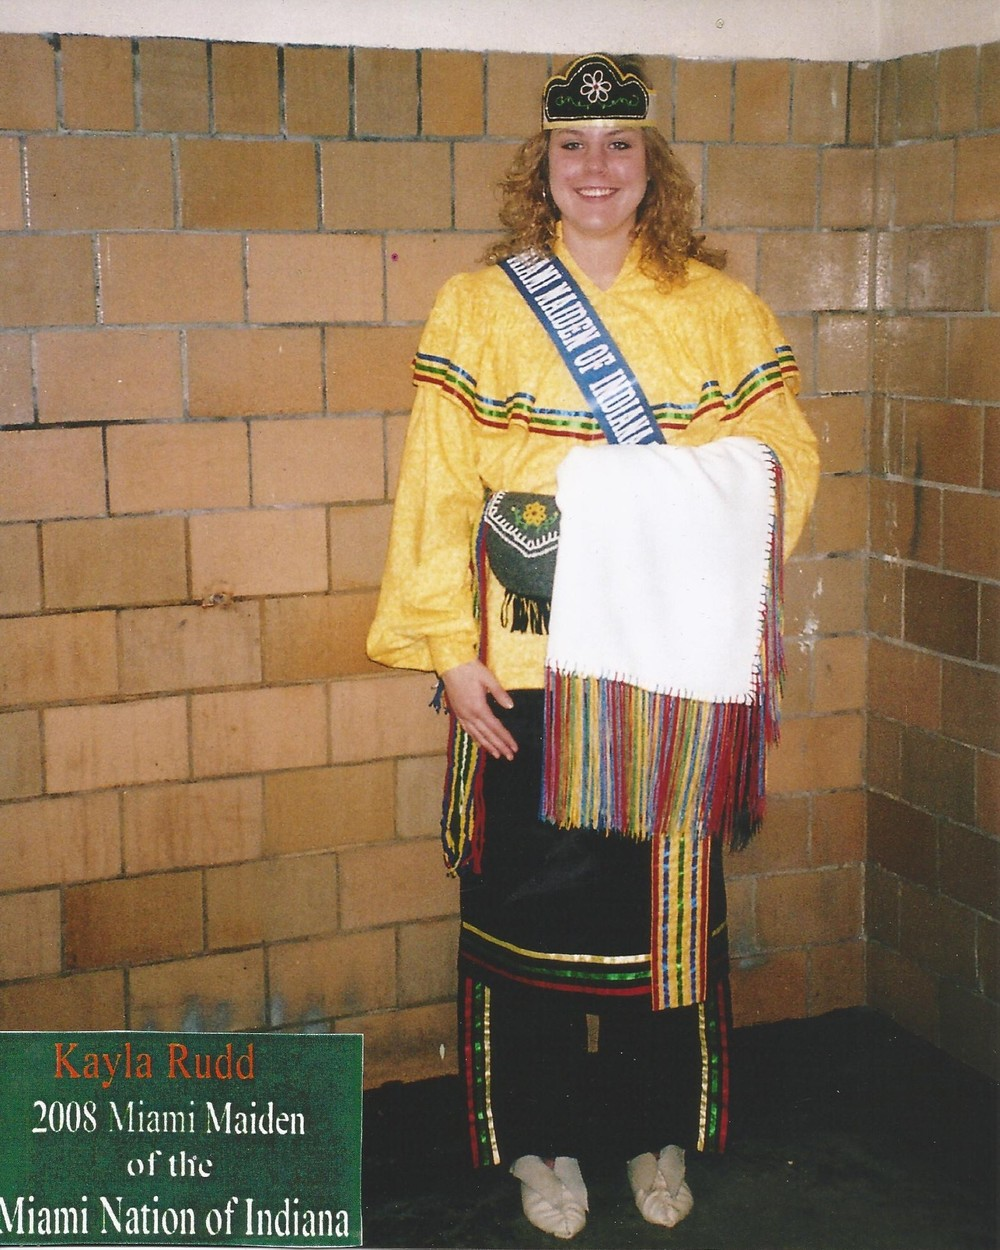 Miss Kayle Rudd - Miss Miami Maiden 2008